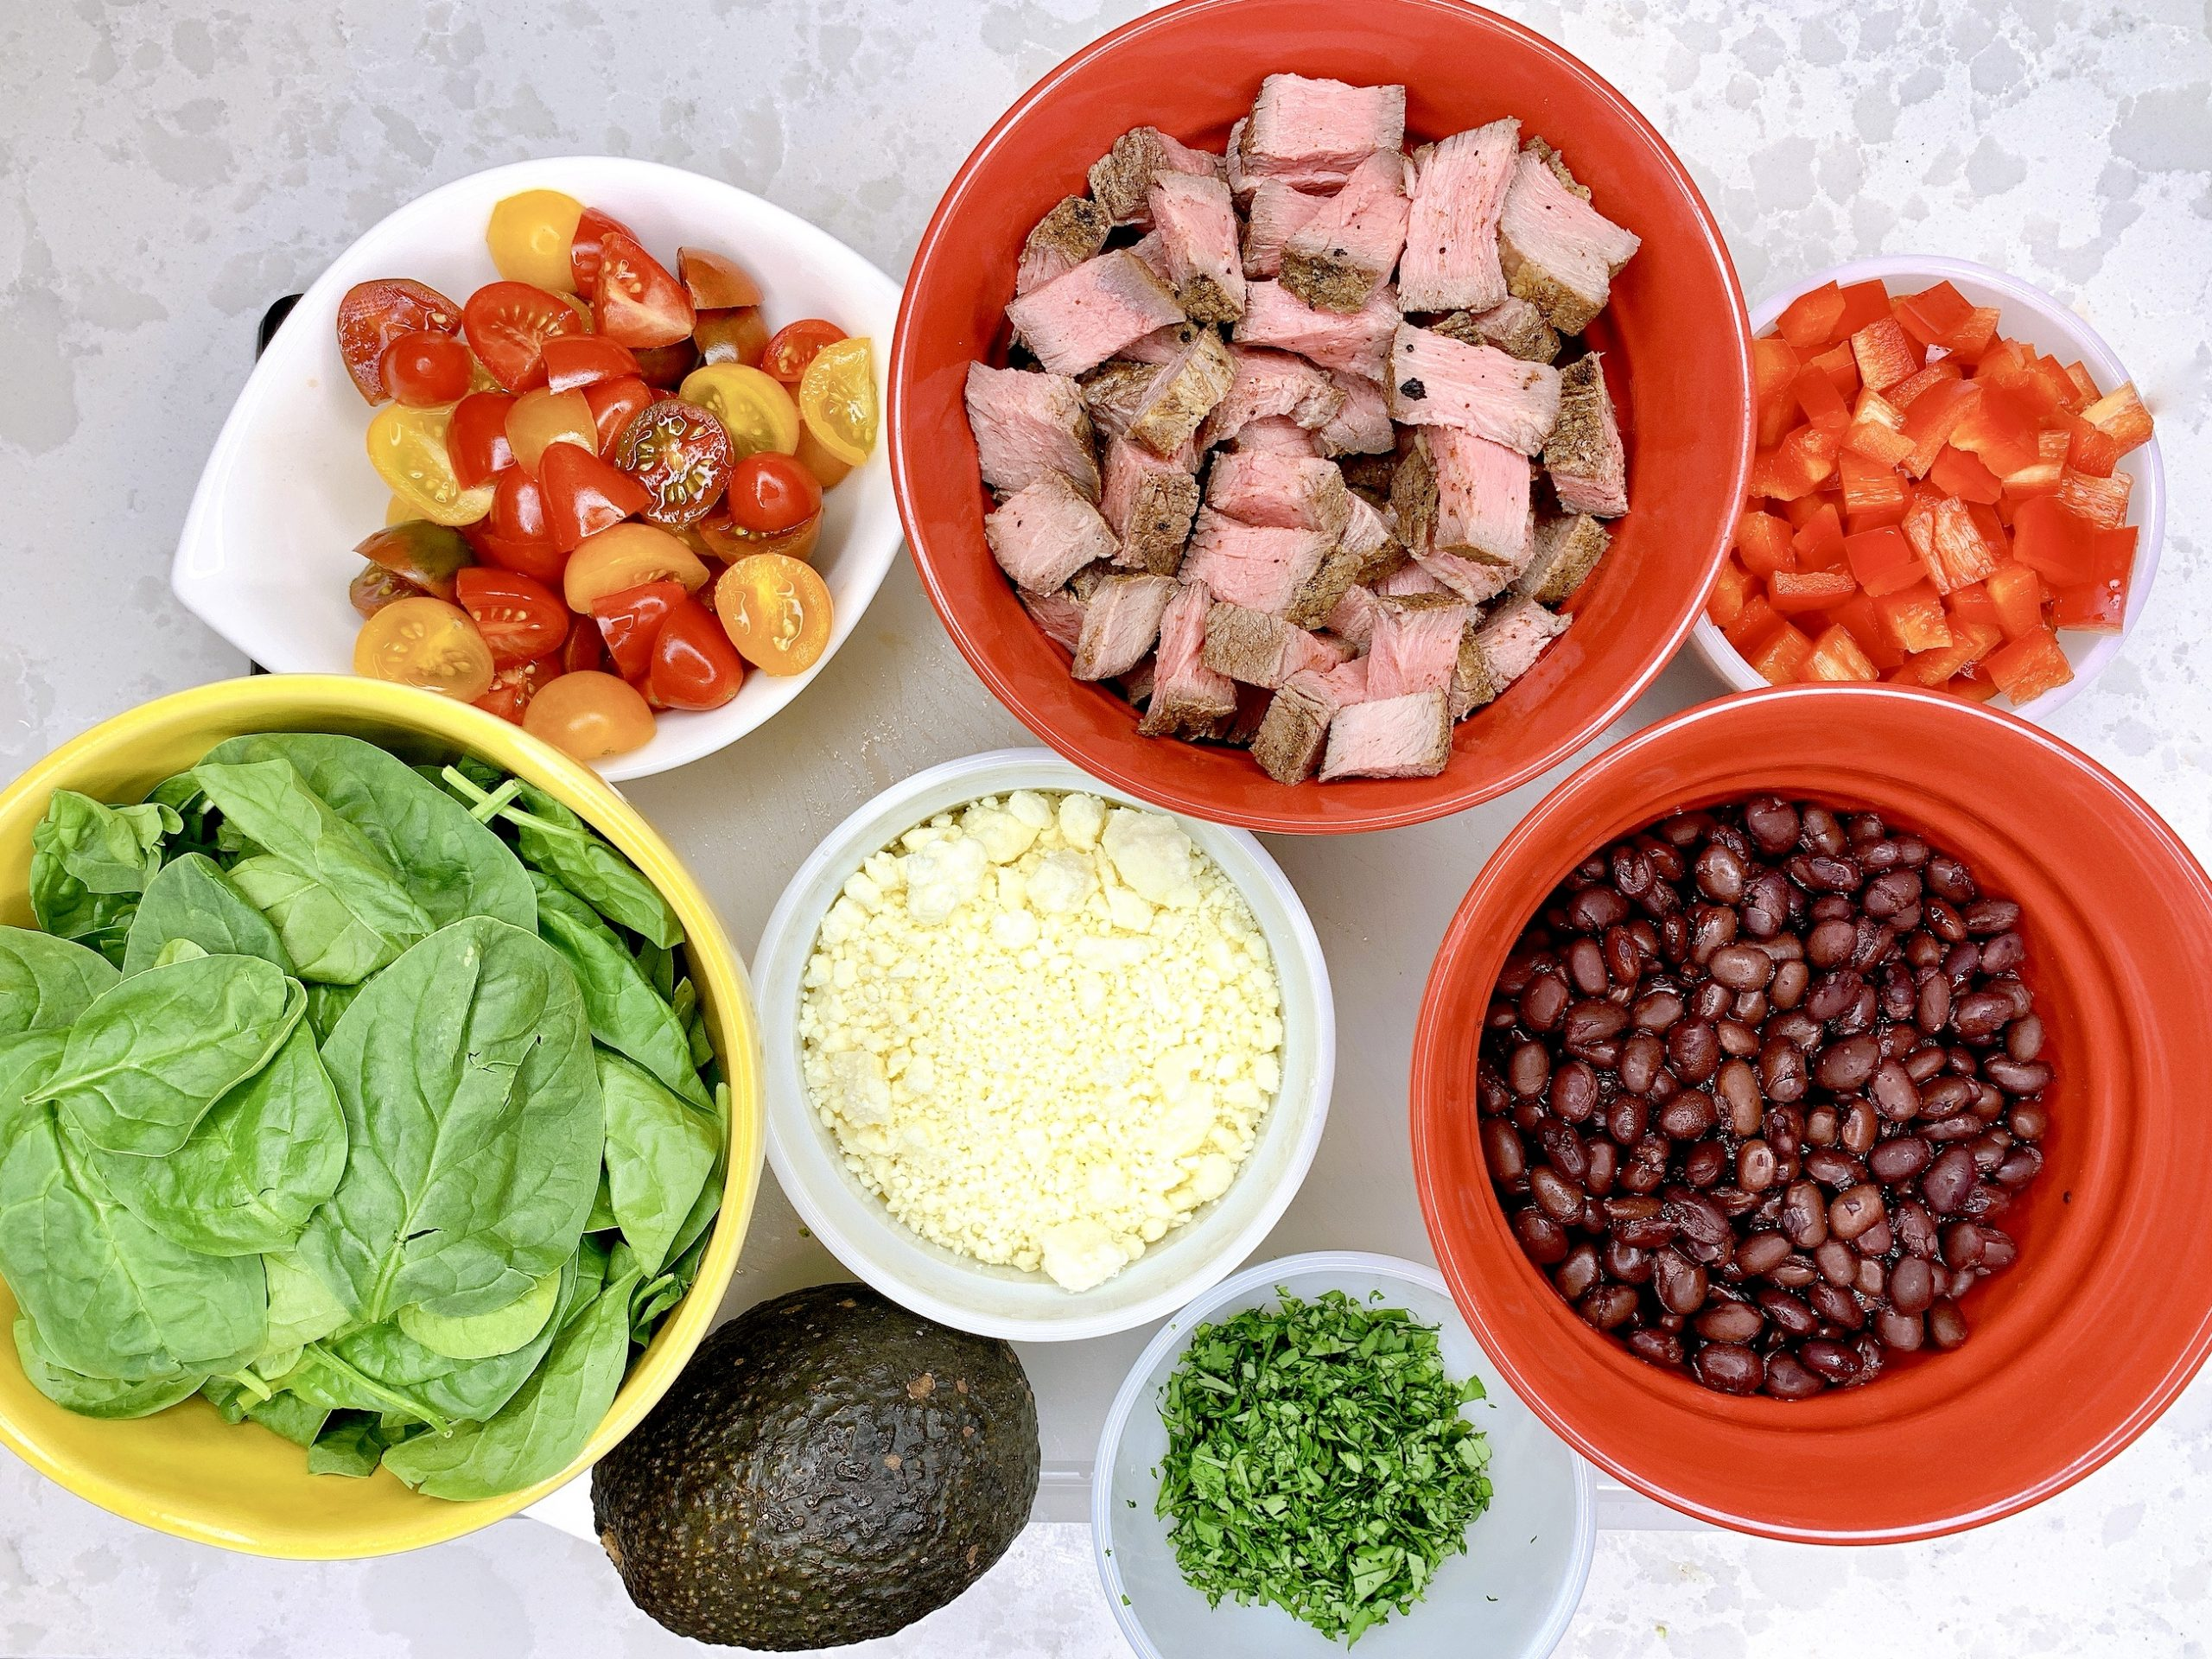 overhead view of chopped ingredients in bowls as part of recipe for Chipotle Steak Bowl with Black Beans and Quinoa